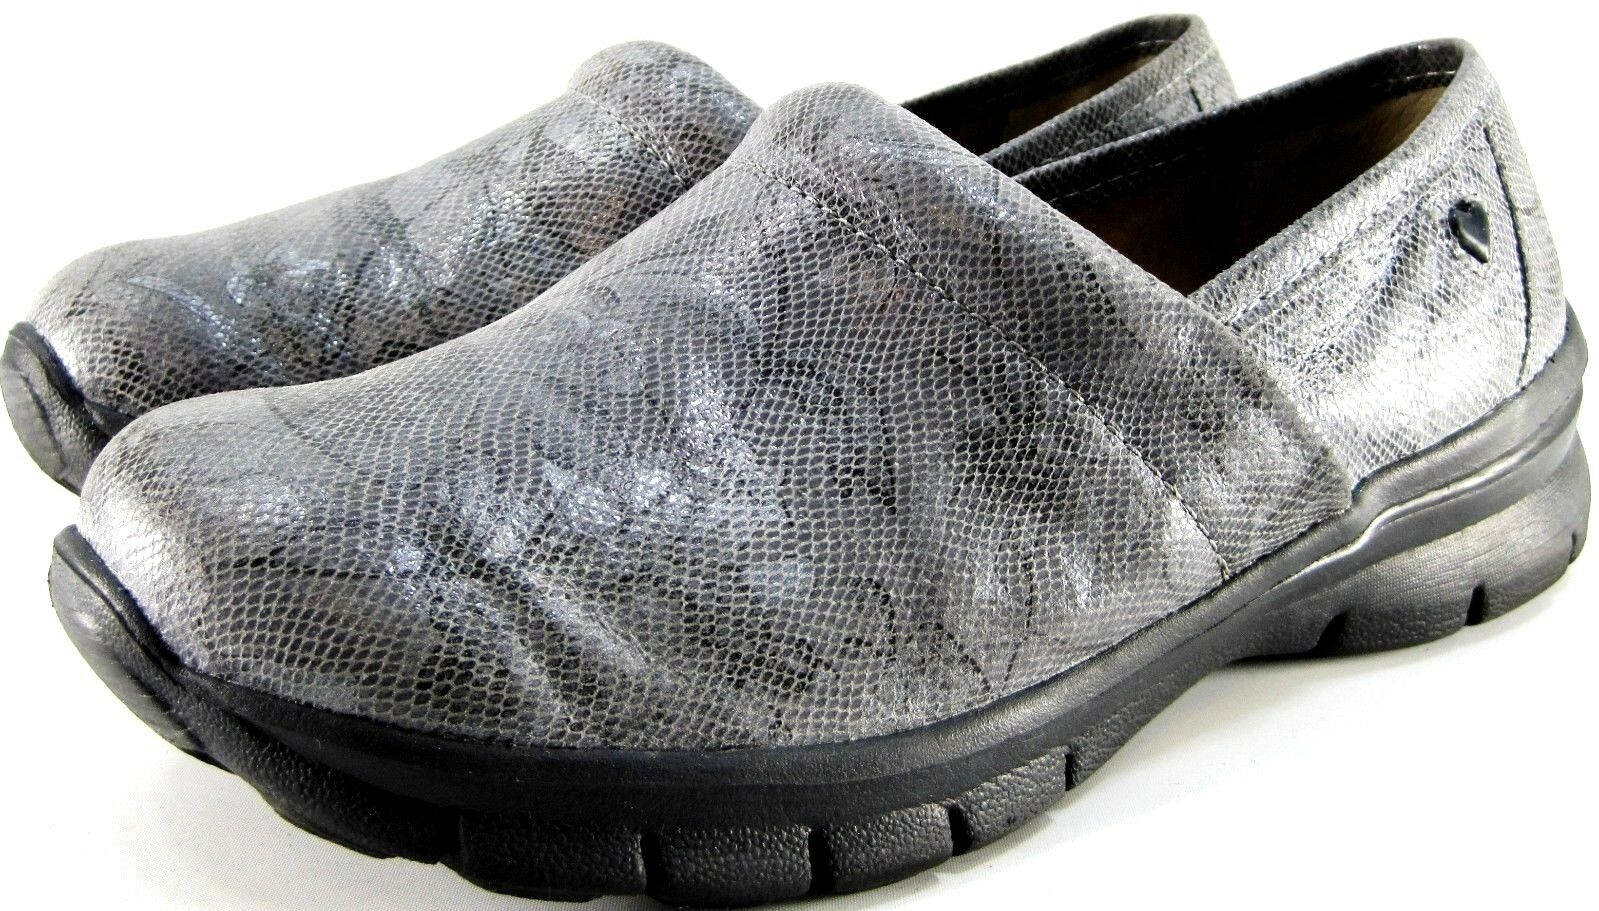 damen Leather Clogs Größe 8.5 Libby Libby Libby Reptile Leather Style 257683 Slip Resistant 27ffef